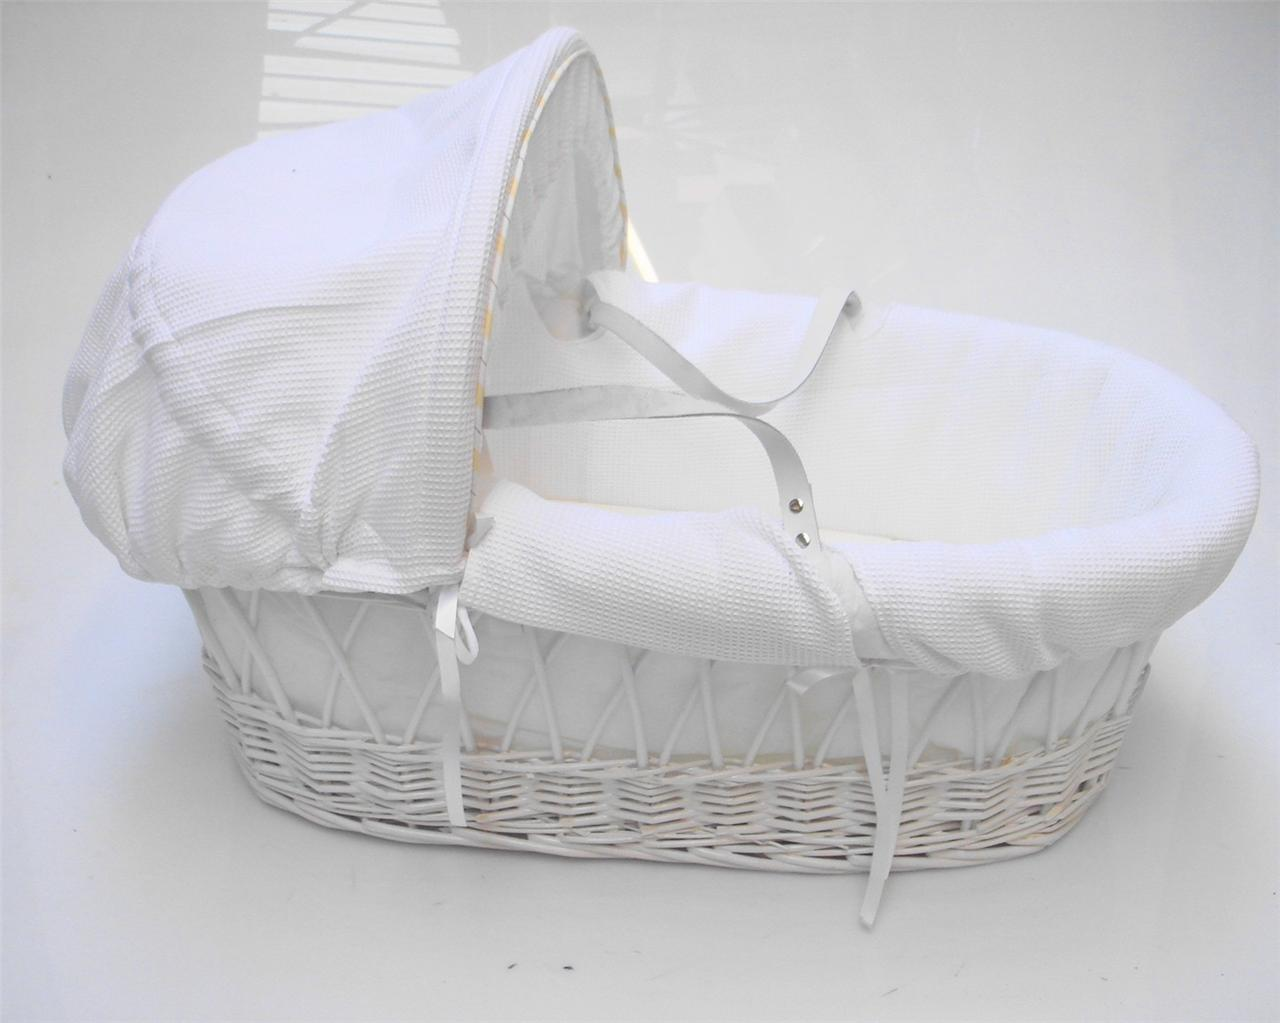 Baby Basket Bassinet Strong Portable Travel Wicker New Baby Babies Bassinet Cot